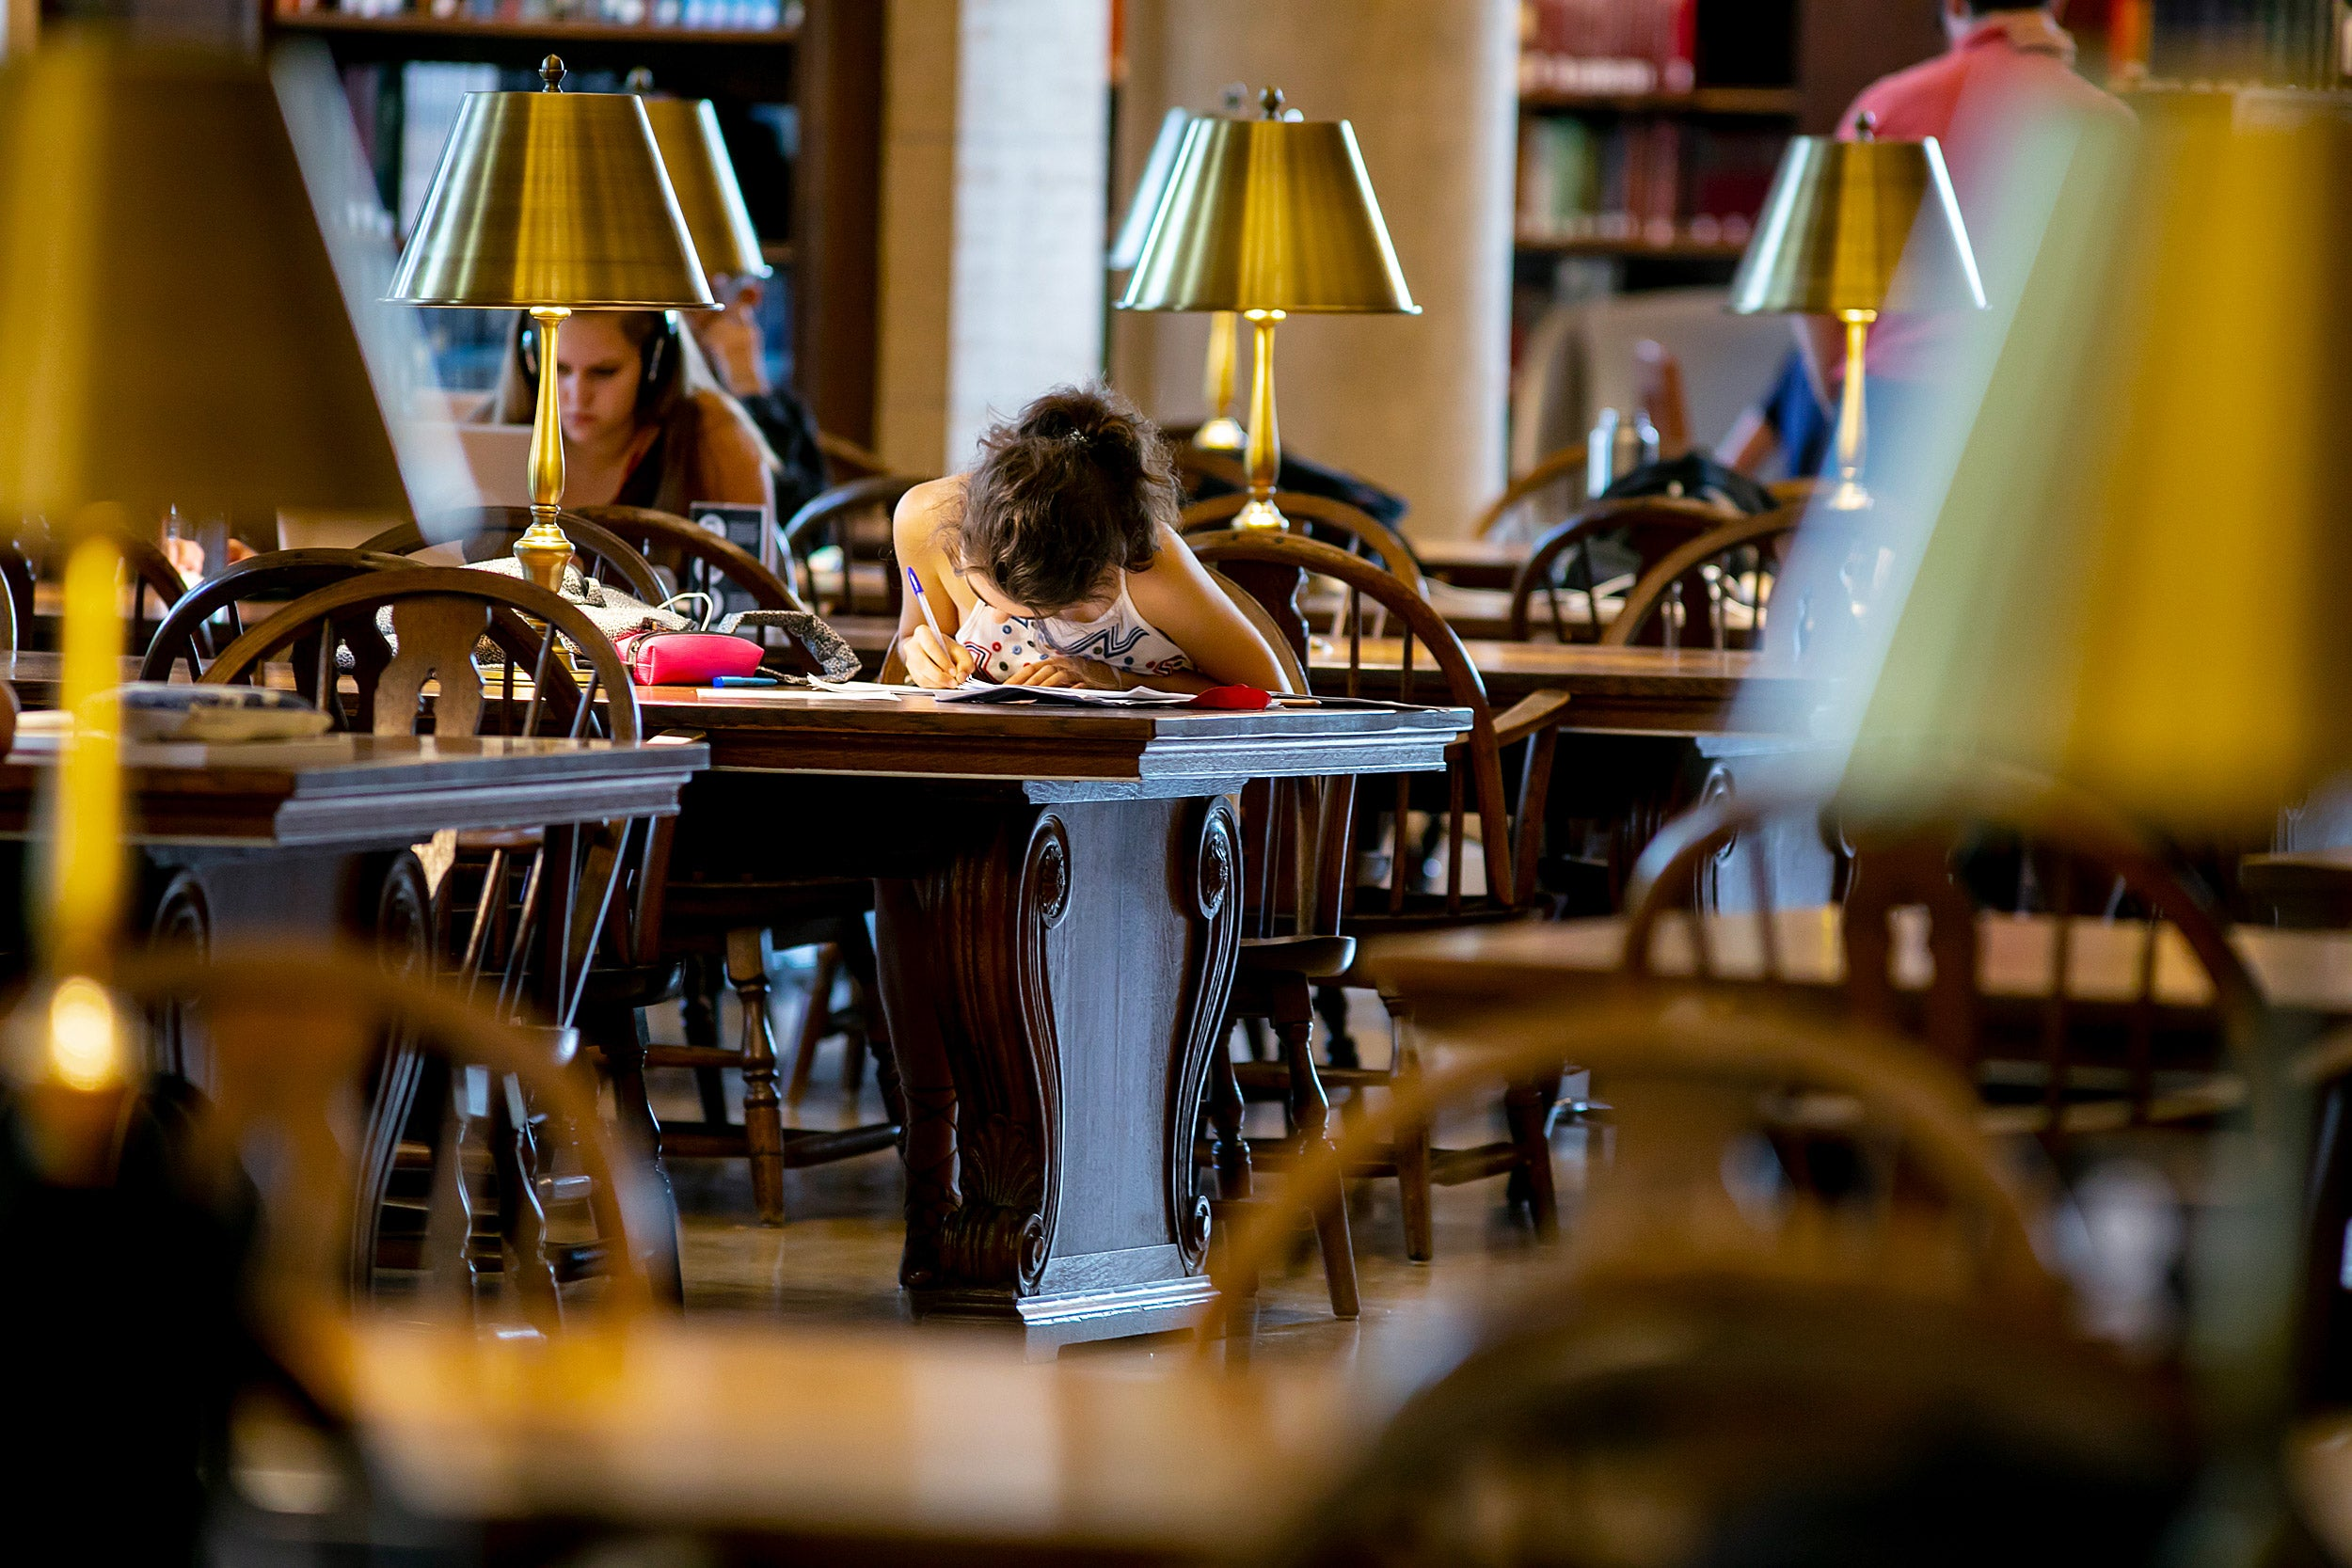 Finding a study space at Harvard's libraries is easier than ever